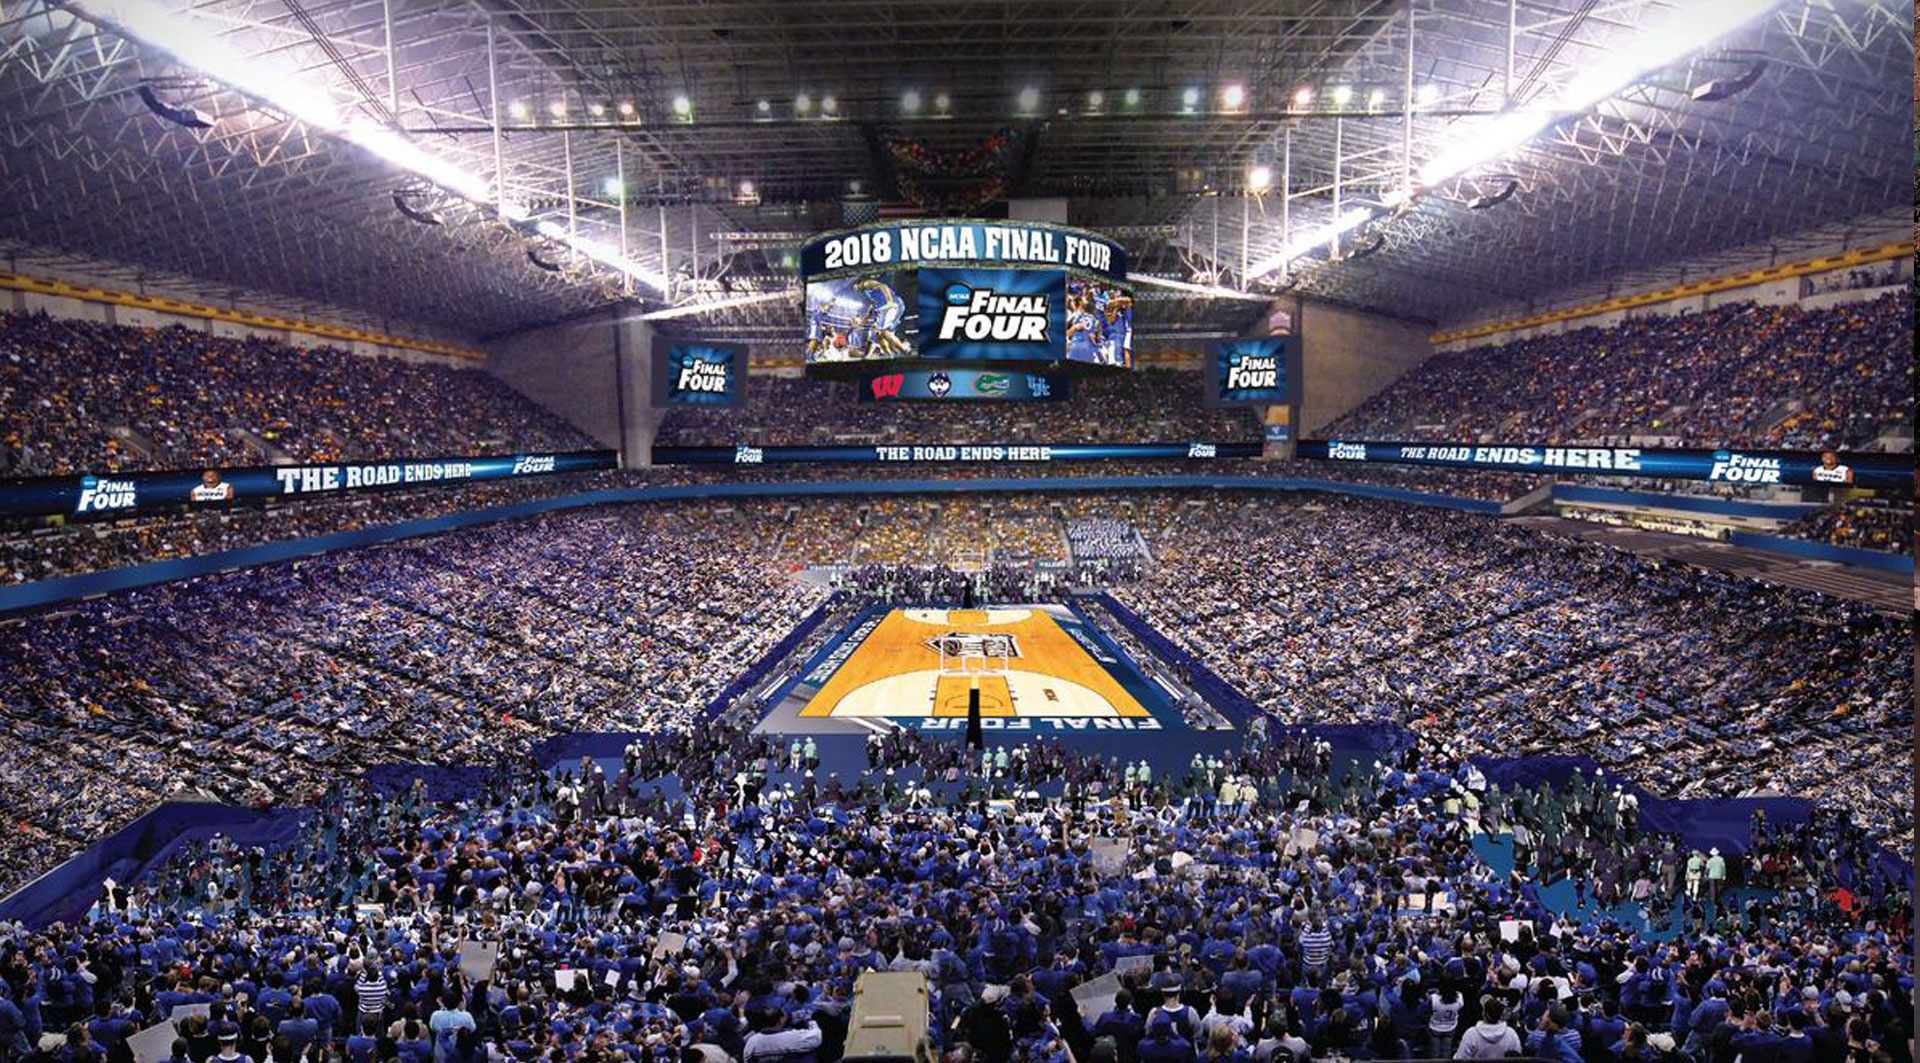 2018 Final Four Package Rates